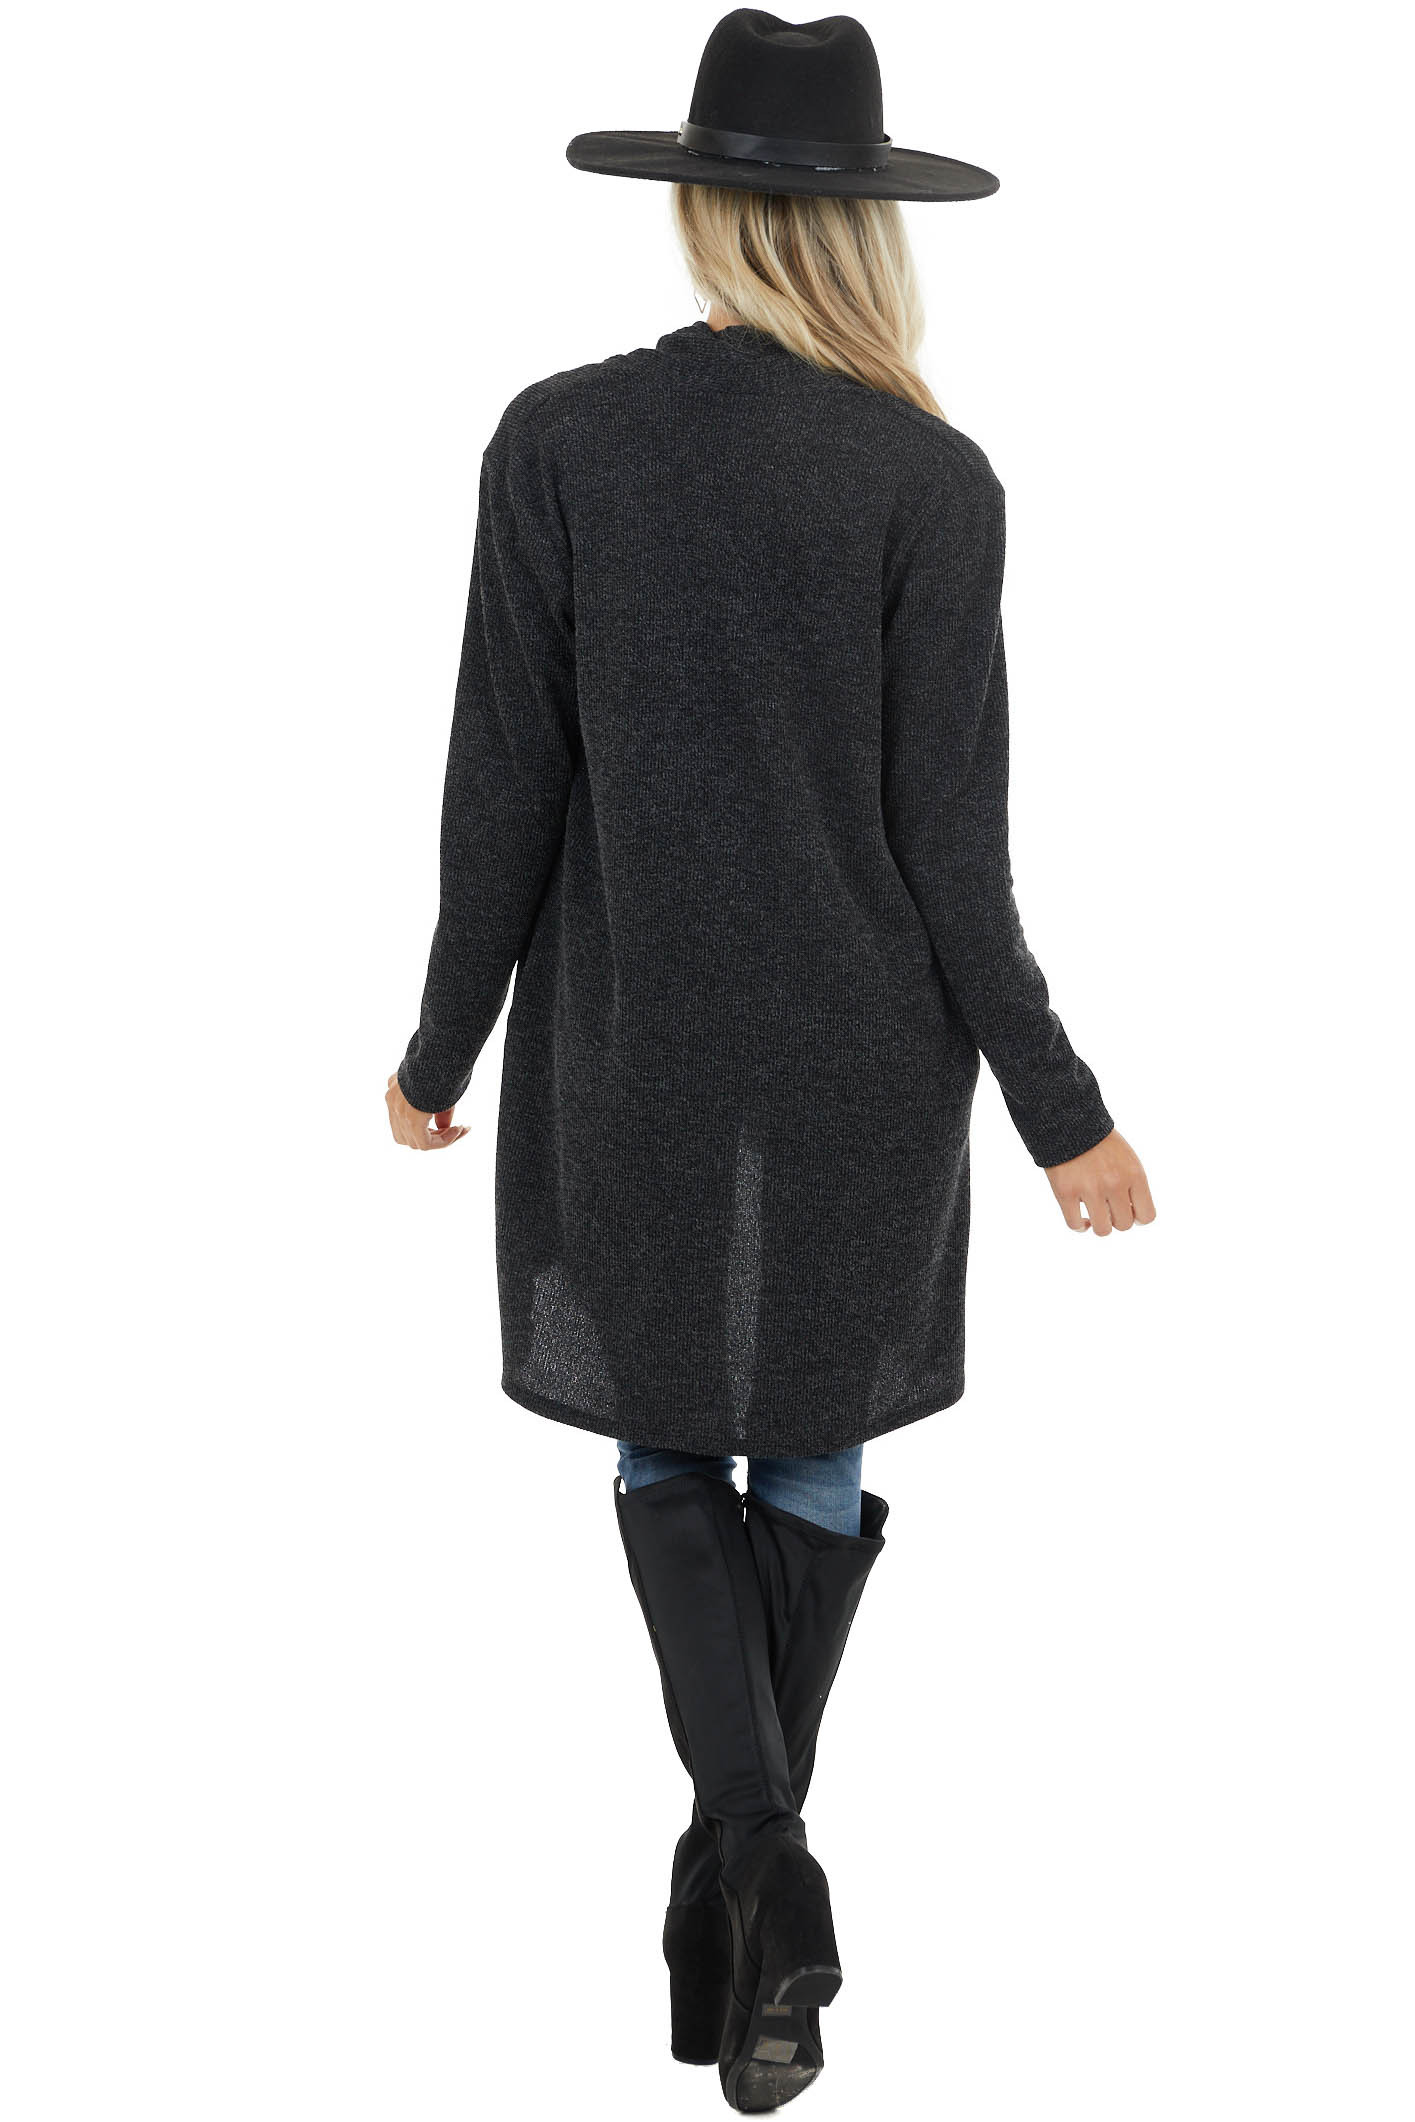 Charcoal Open Front Long Sleeve Cardigan with Pockets